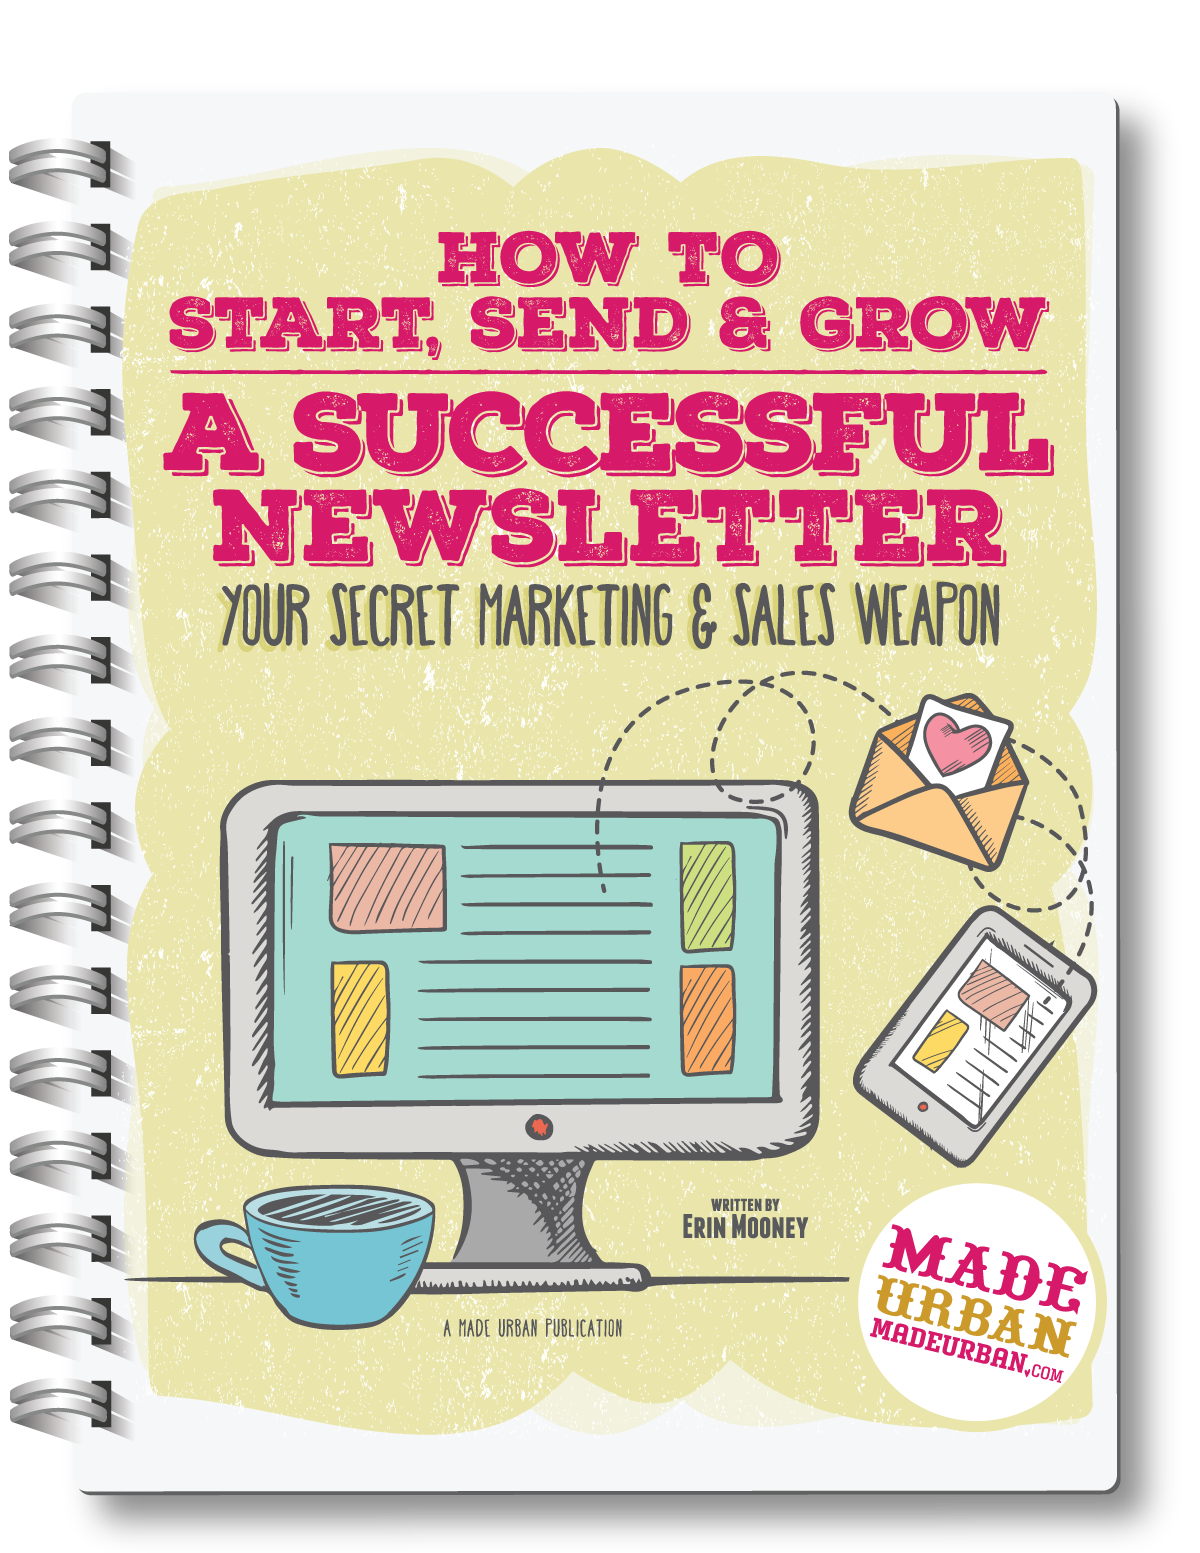 This is the only resource you'll need when it comes to starting, sending & growing a newsletter. Every business needs a newsletter. If you don't have one set up yet or you do but you're not making use of it, start now! I'll walk you through each step with easy to follow instructions, share my best tips for achieving above average stats...your newsletter is going to become your best sales tool!